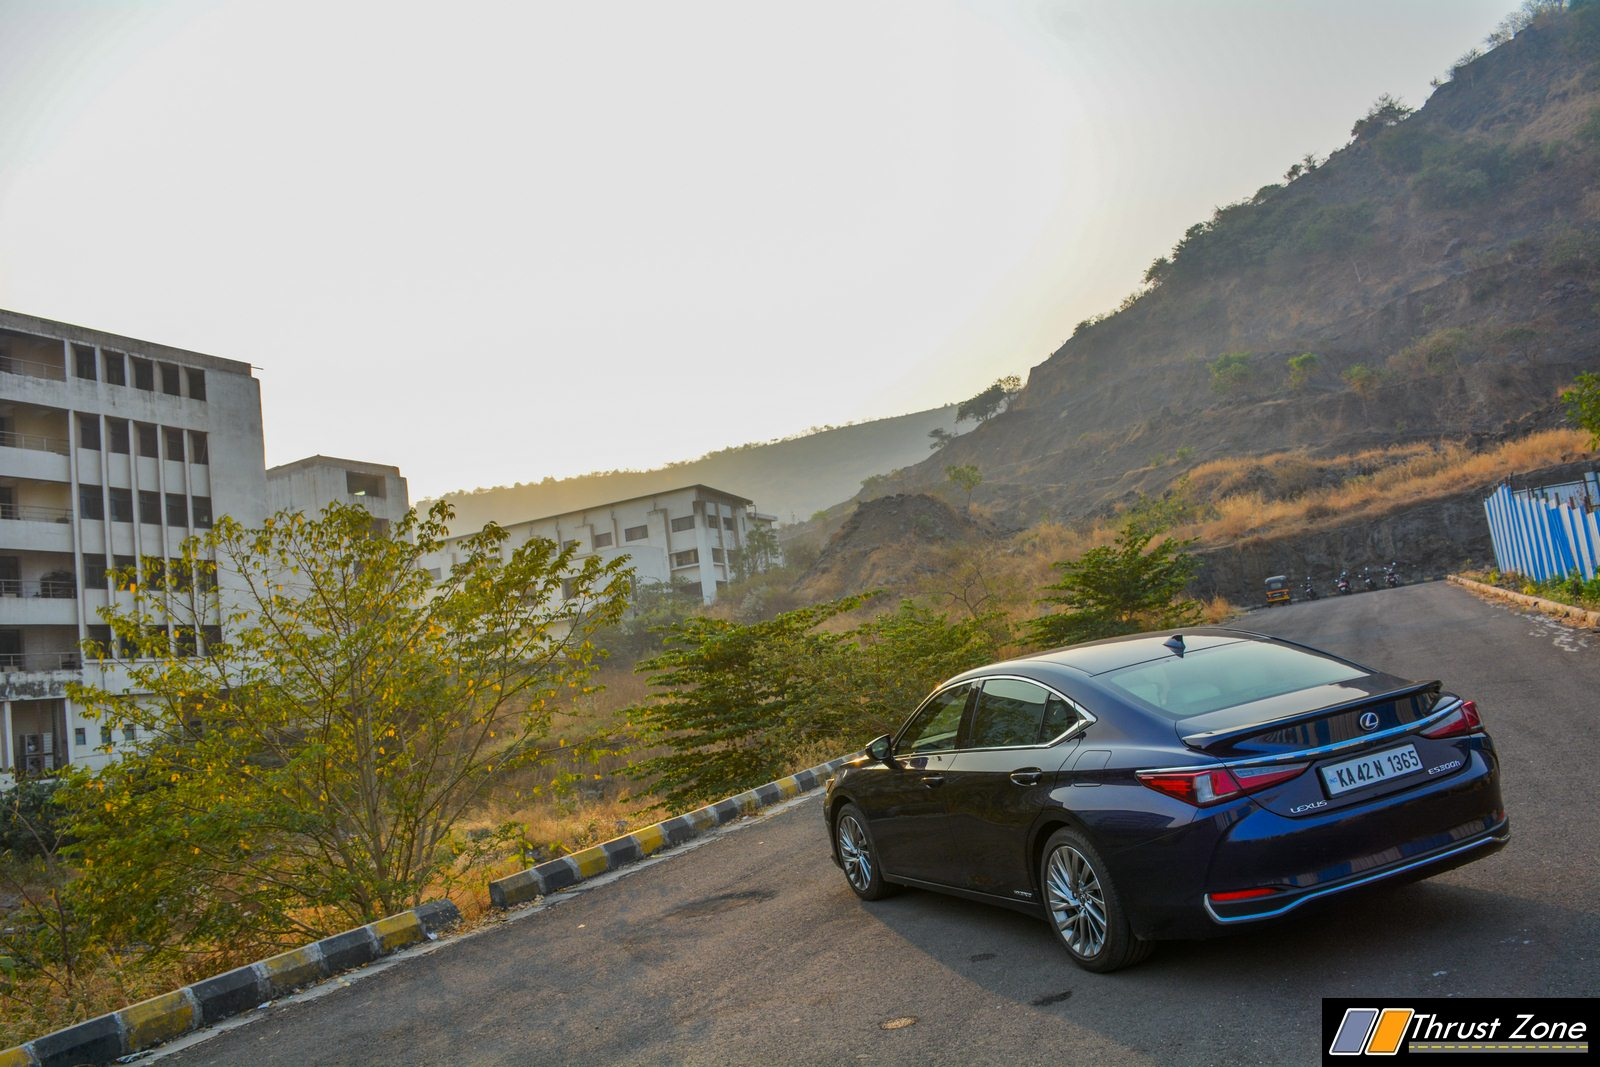 https://www.thrustzone.com/wp-content/uploads/2019/05/2019-Lexus-ES-Review-Petrol-Hybrid-13.jpg